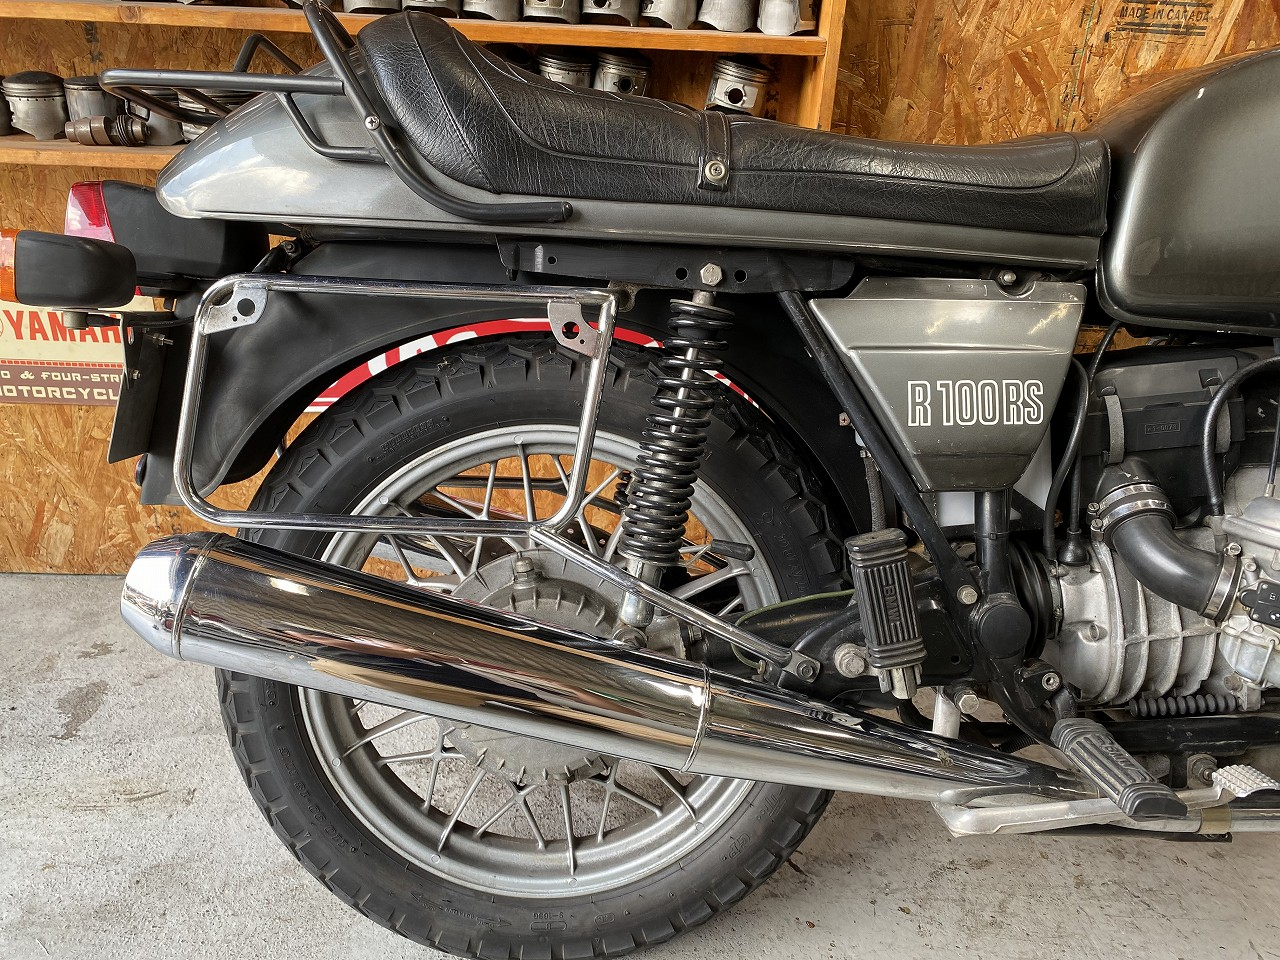 R100RS-17